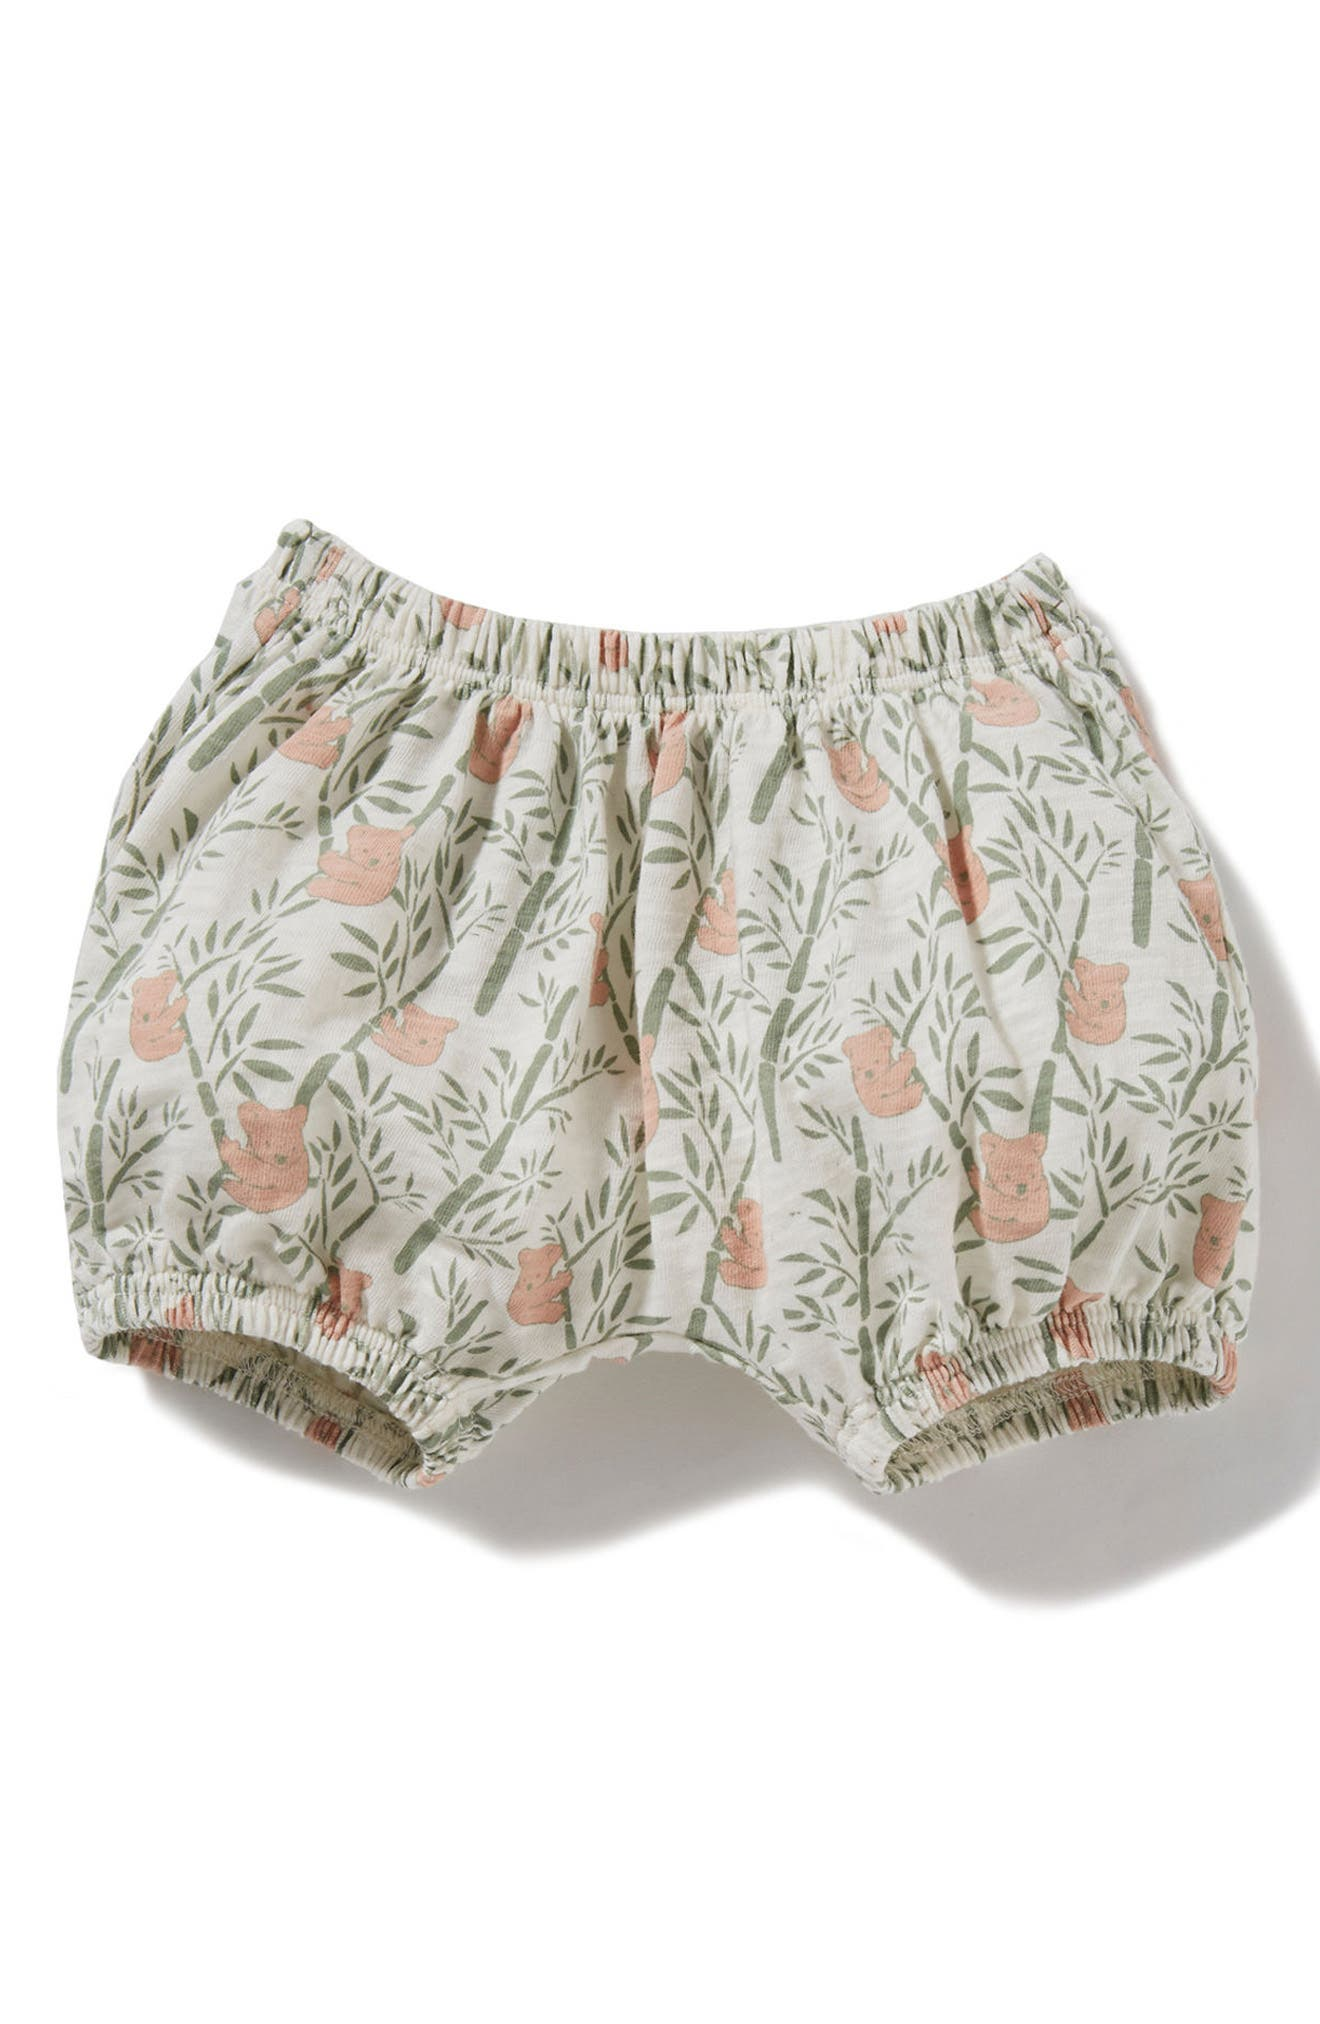 Peek Koala Bubble Shorts,                             Main thumbnail 1, color,                             900